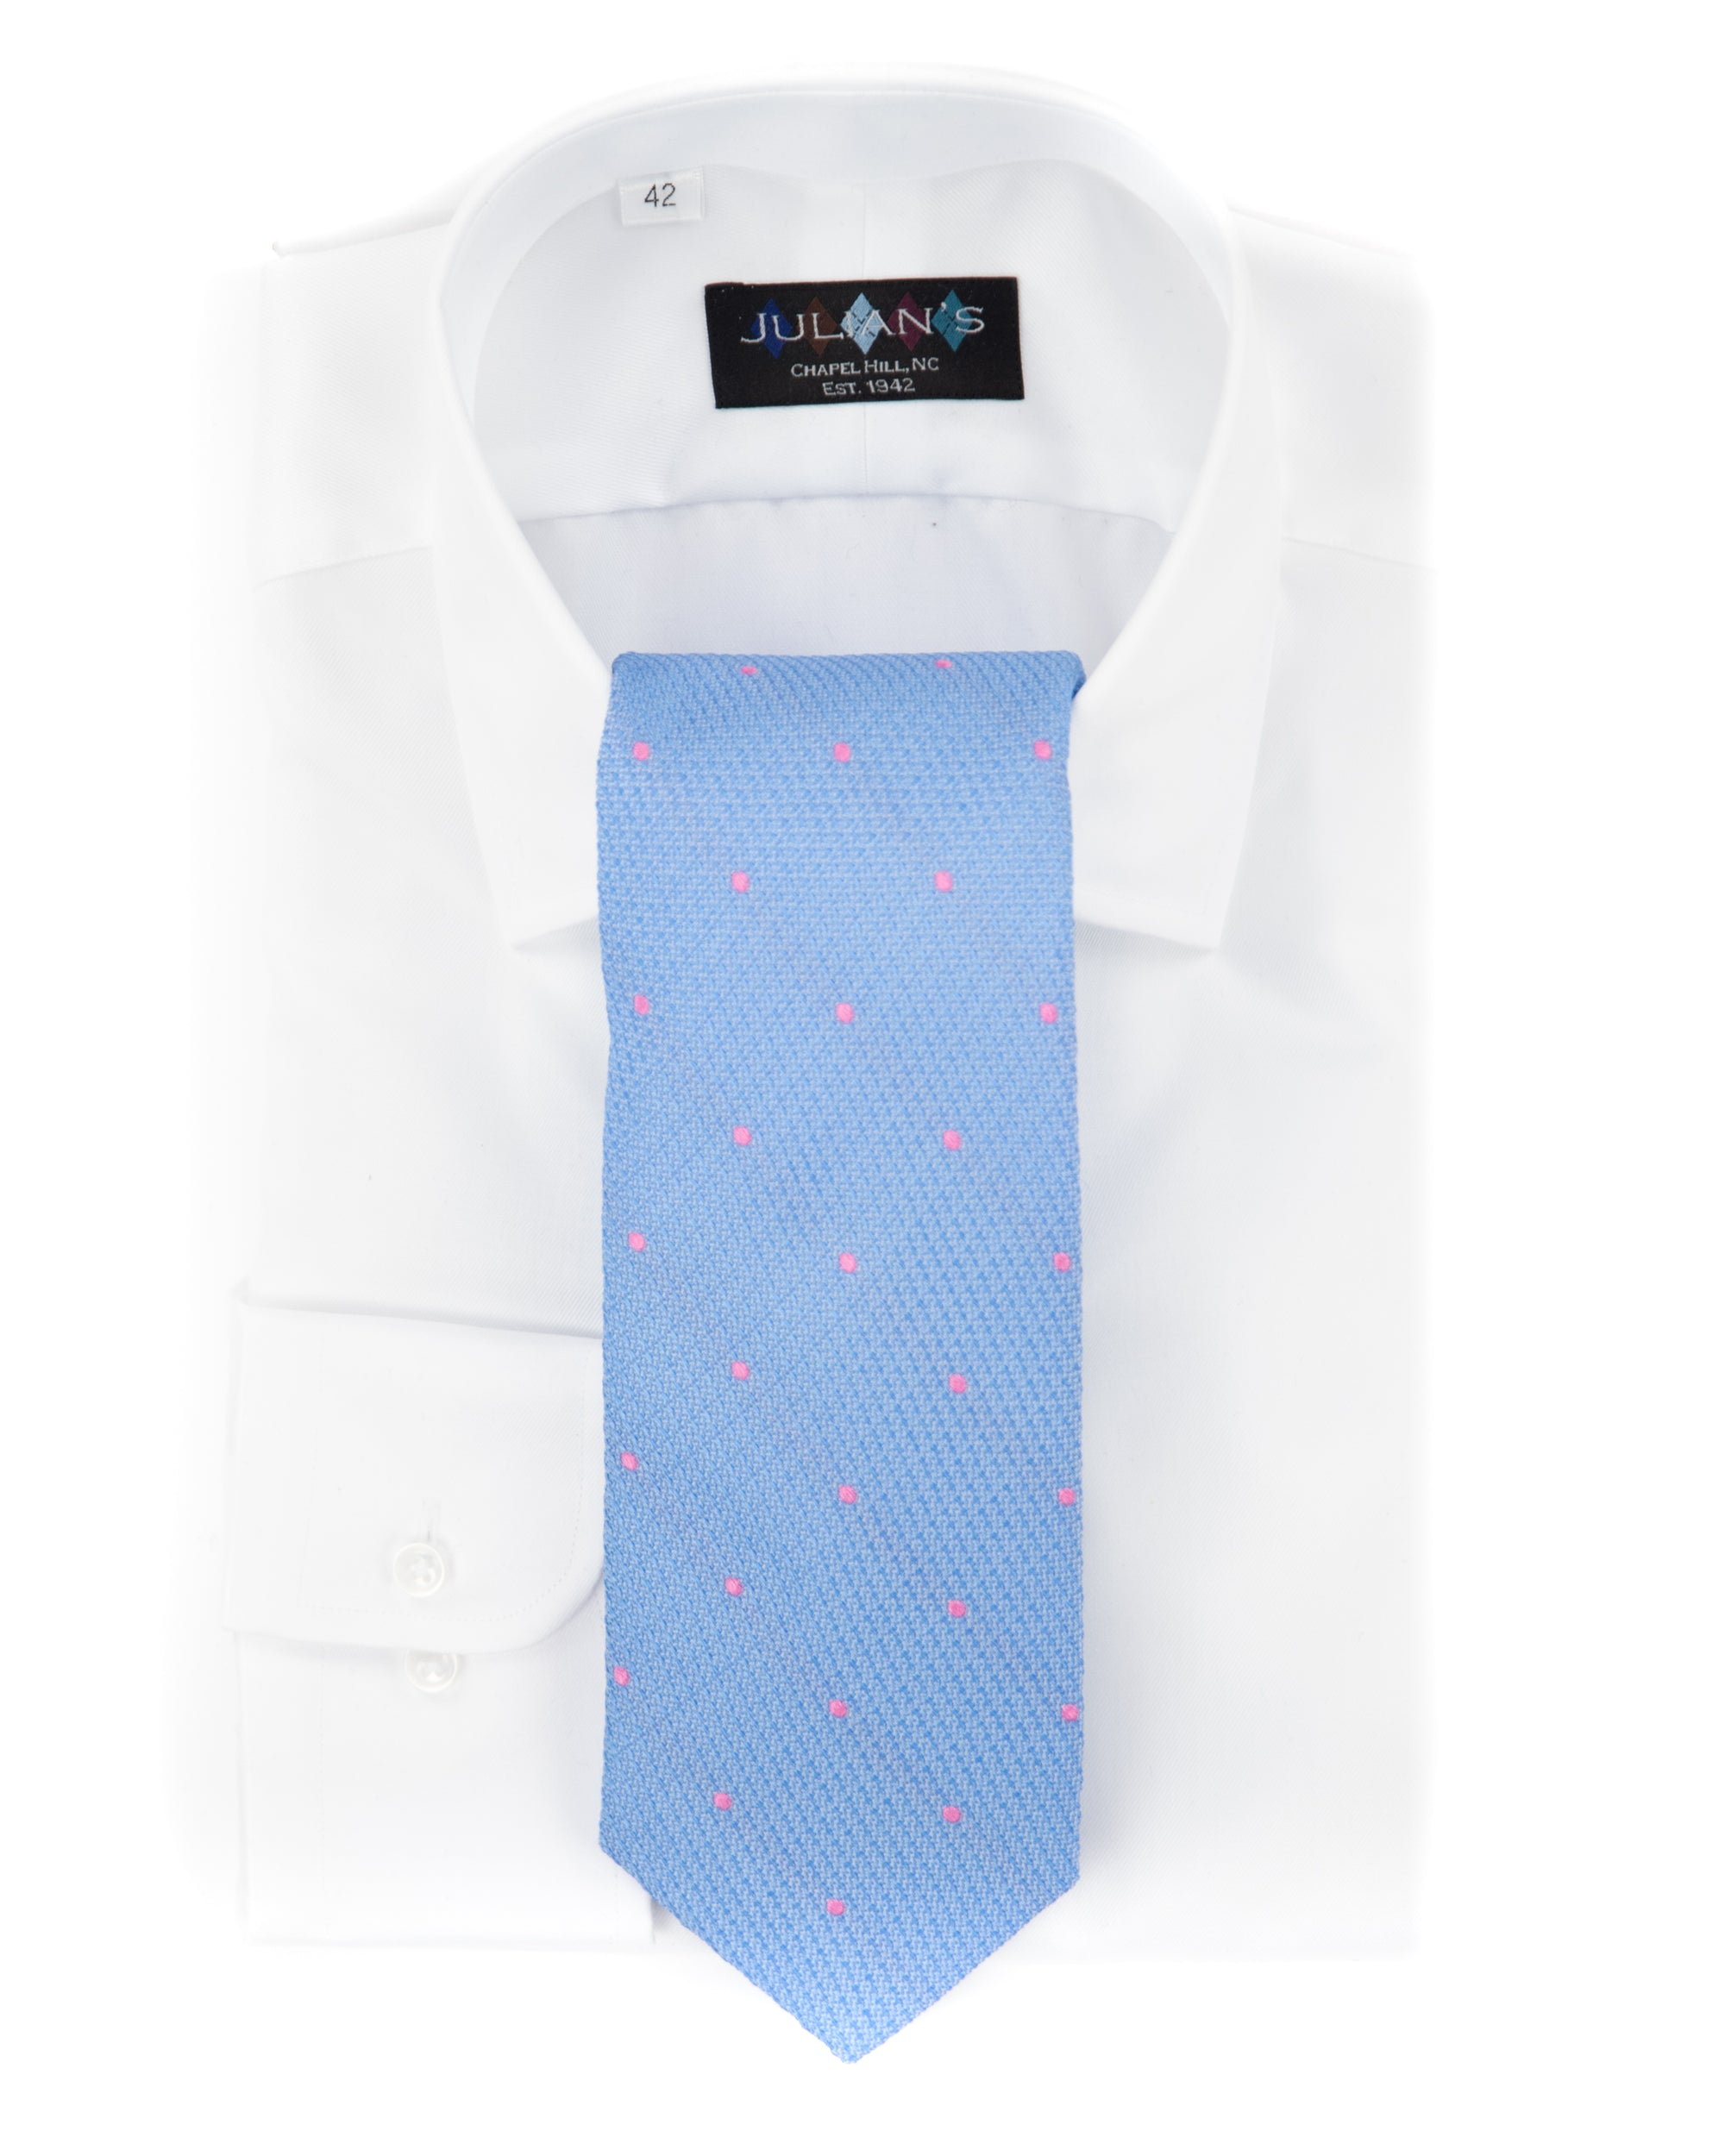 2017 Final Four Pink Dot Necktie